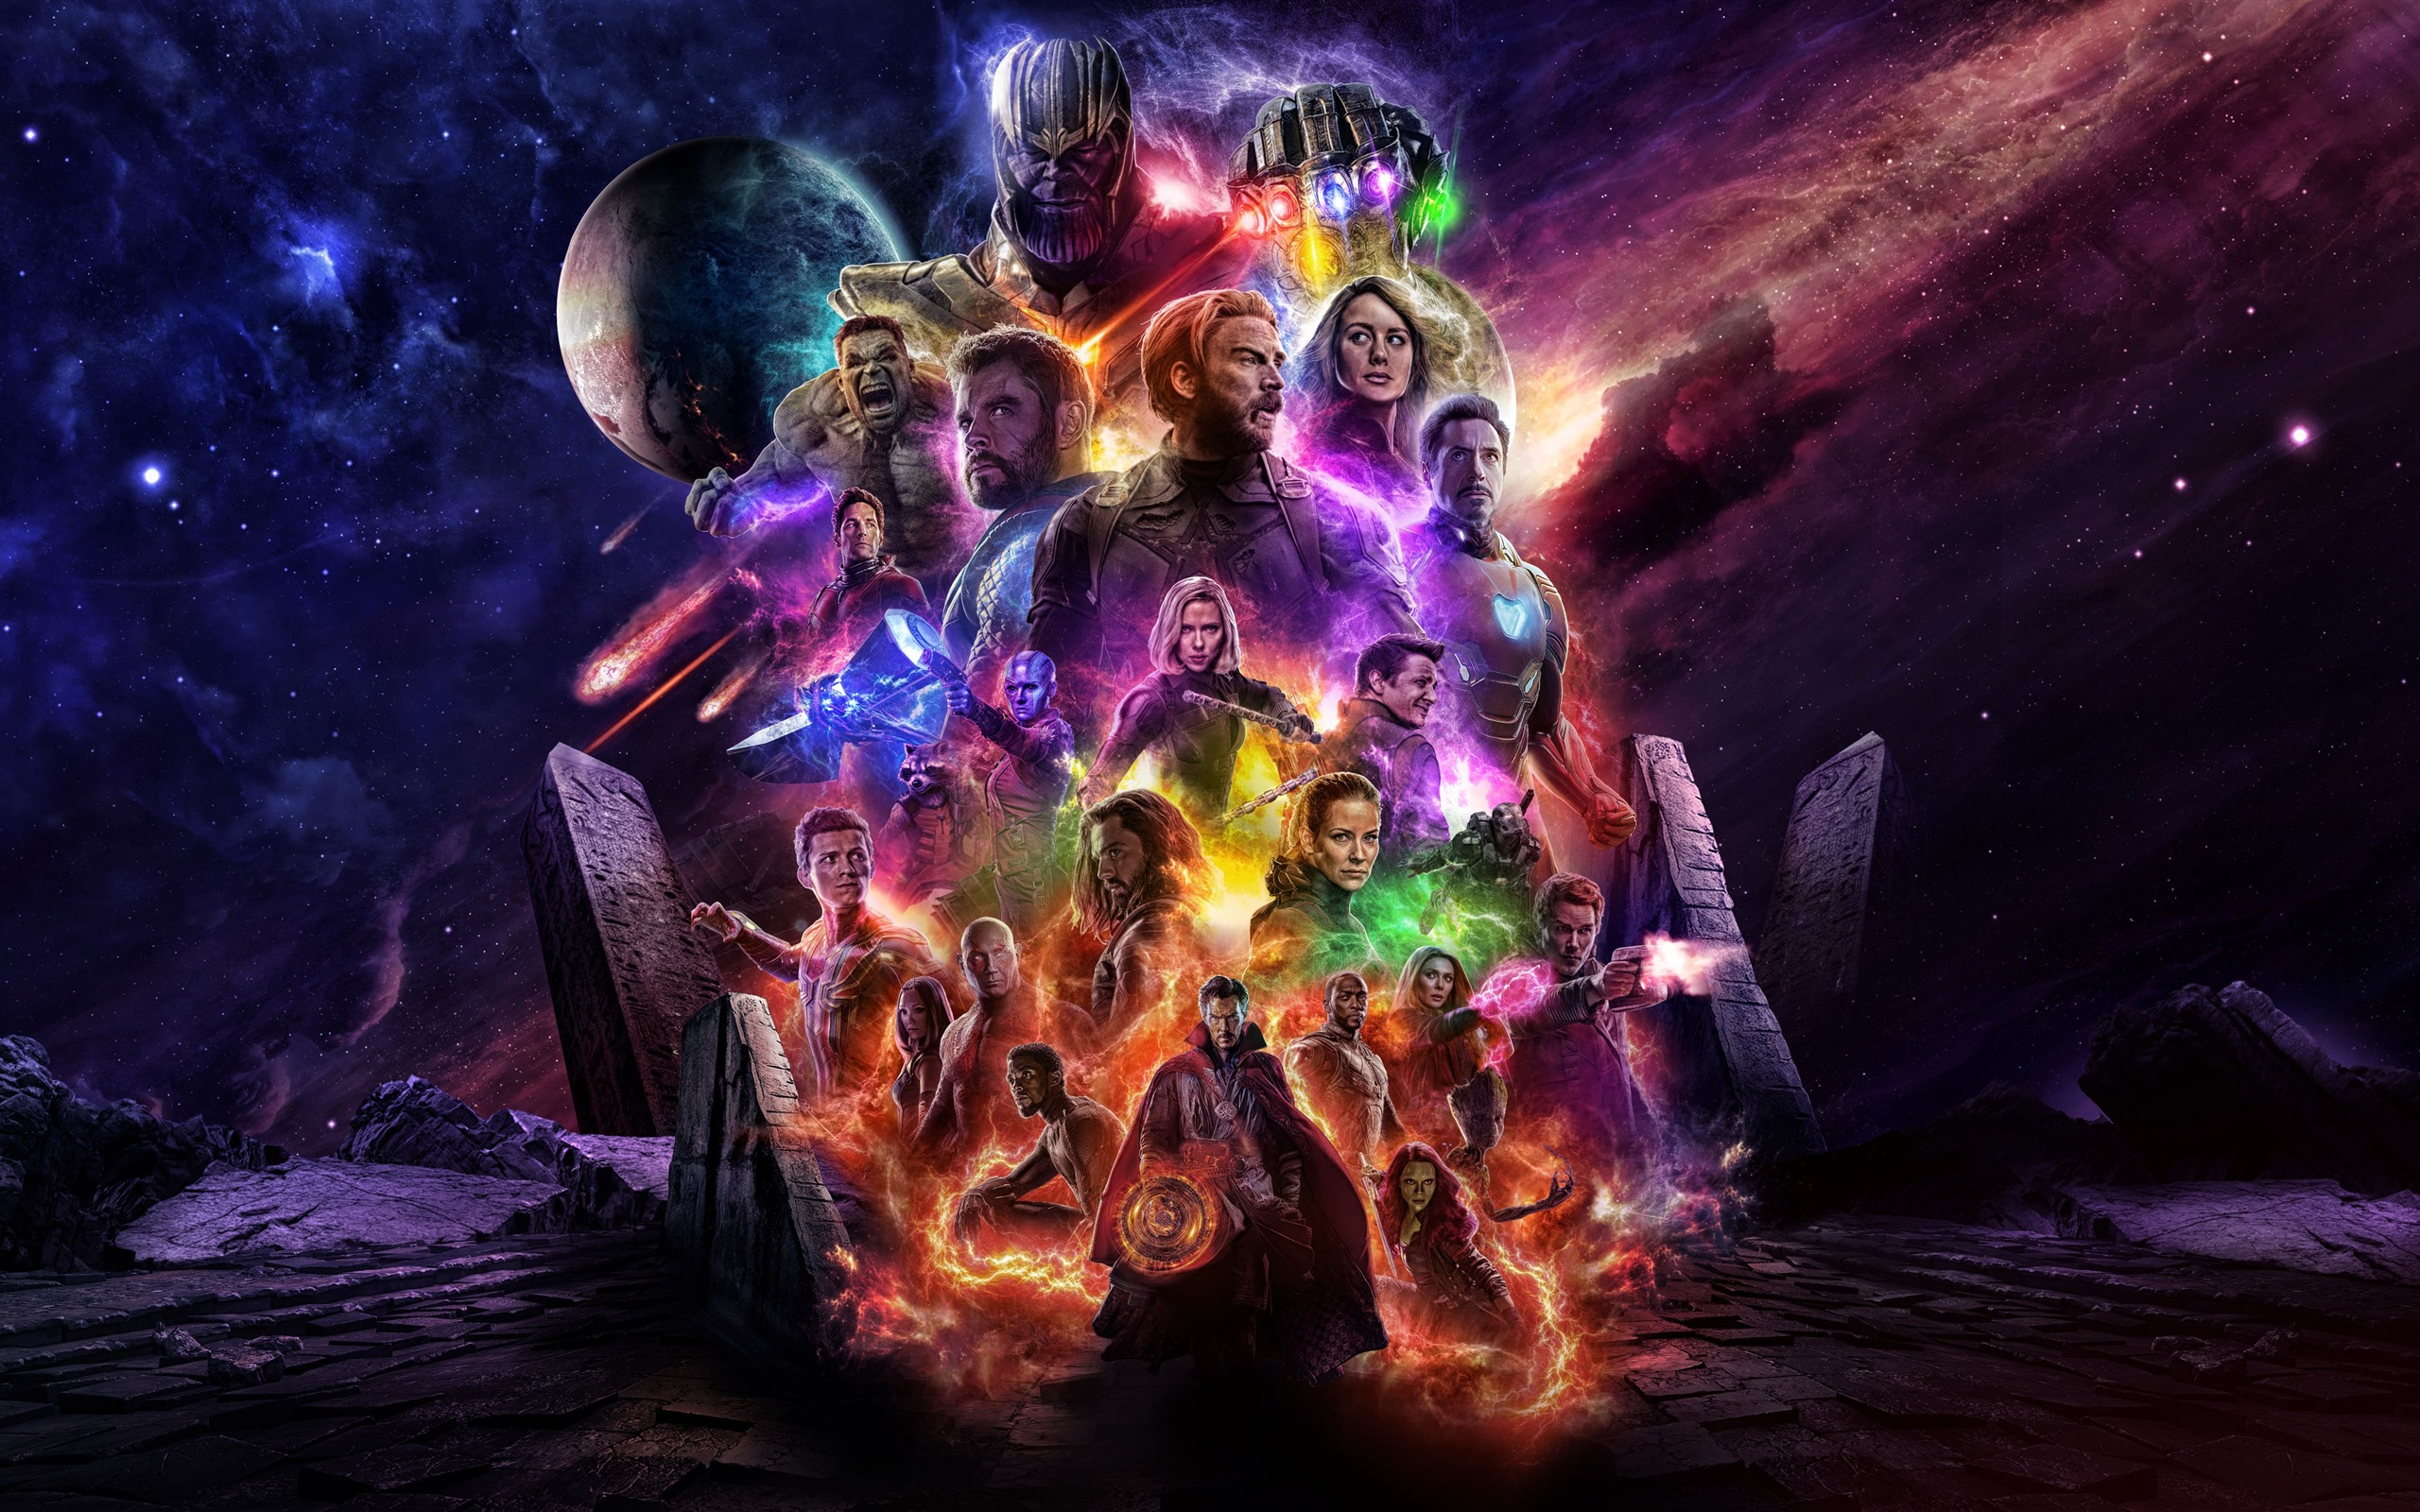 Avengers Endgame 2019 1242x2688 Iphone Xs Max Wallpaper Background